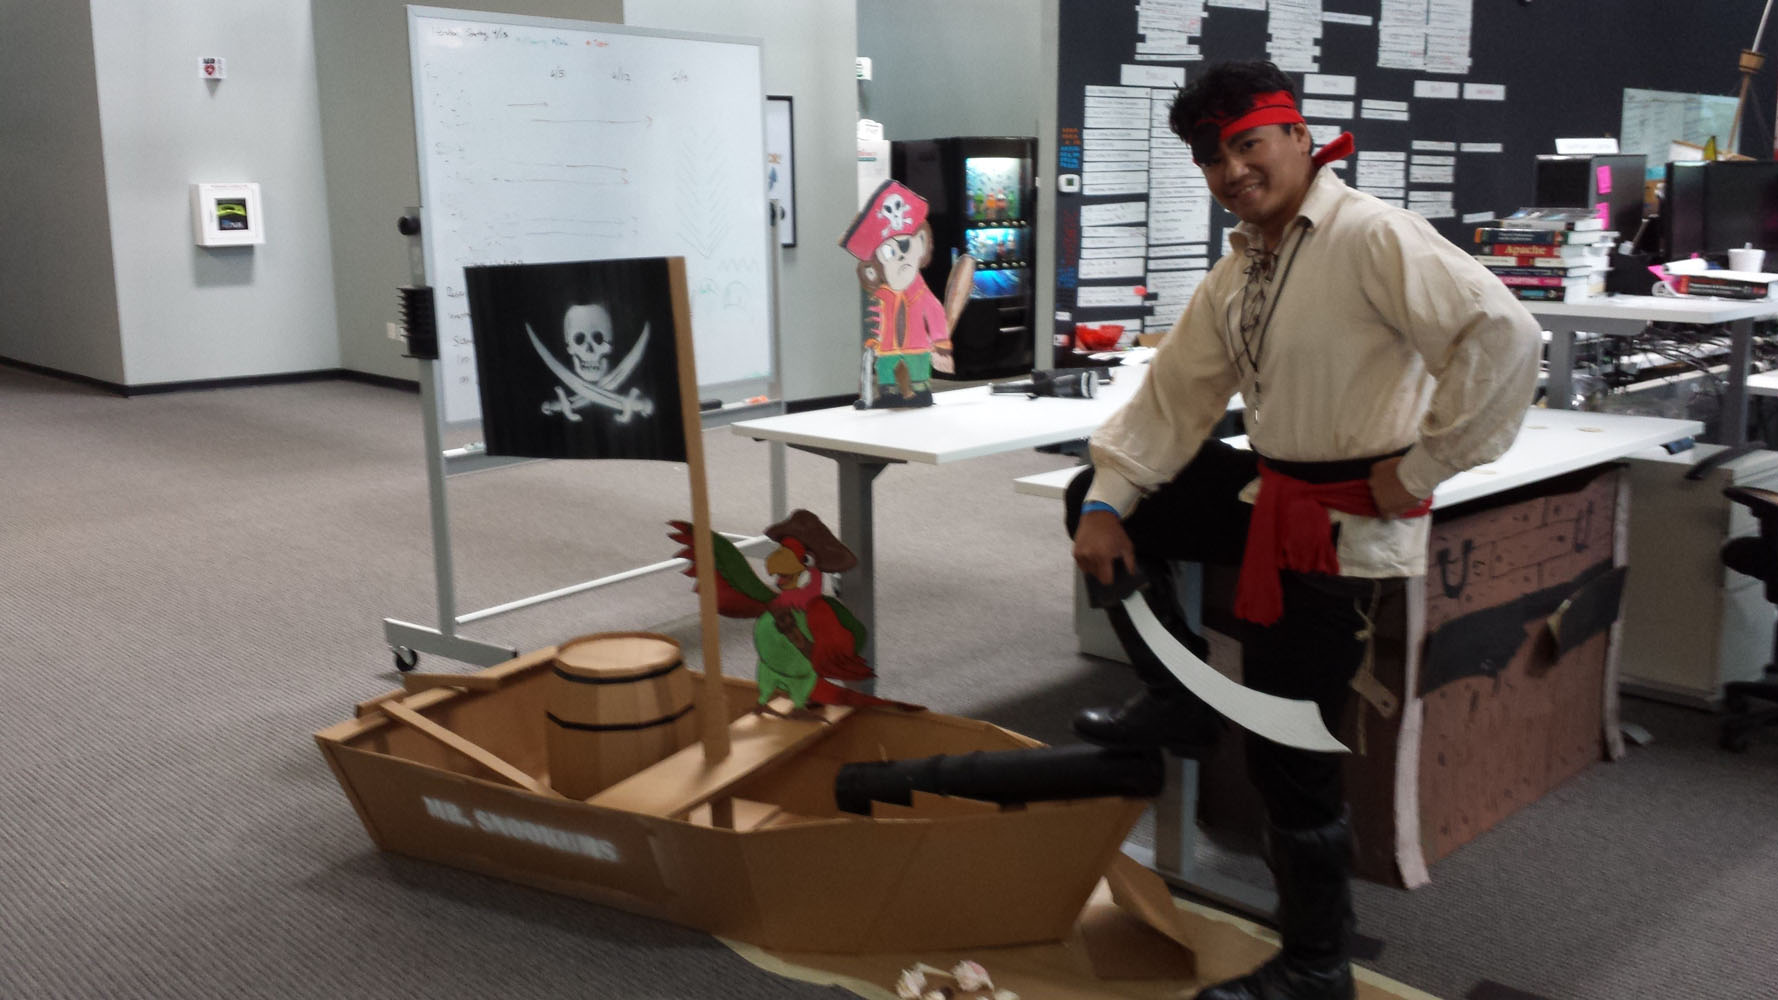 Pirate_and_Dinghy.jpg